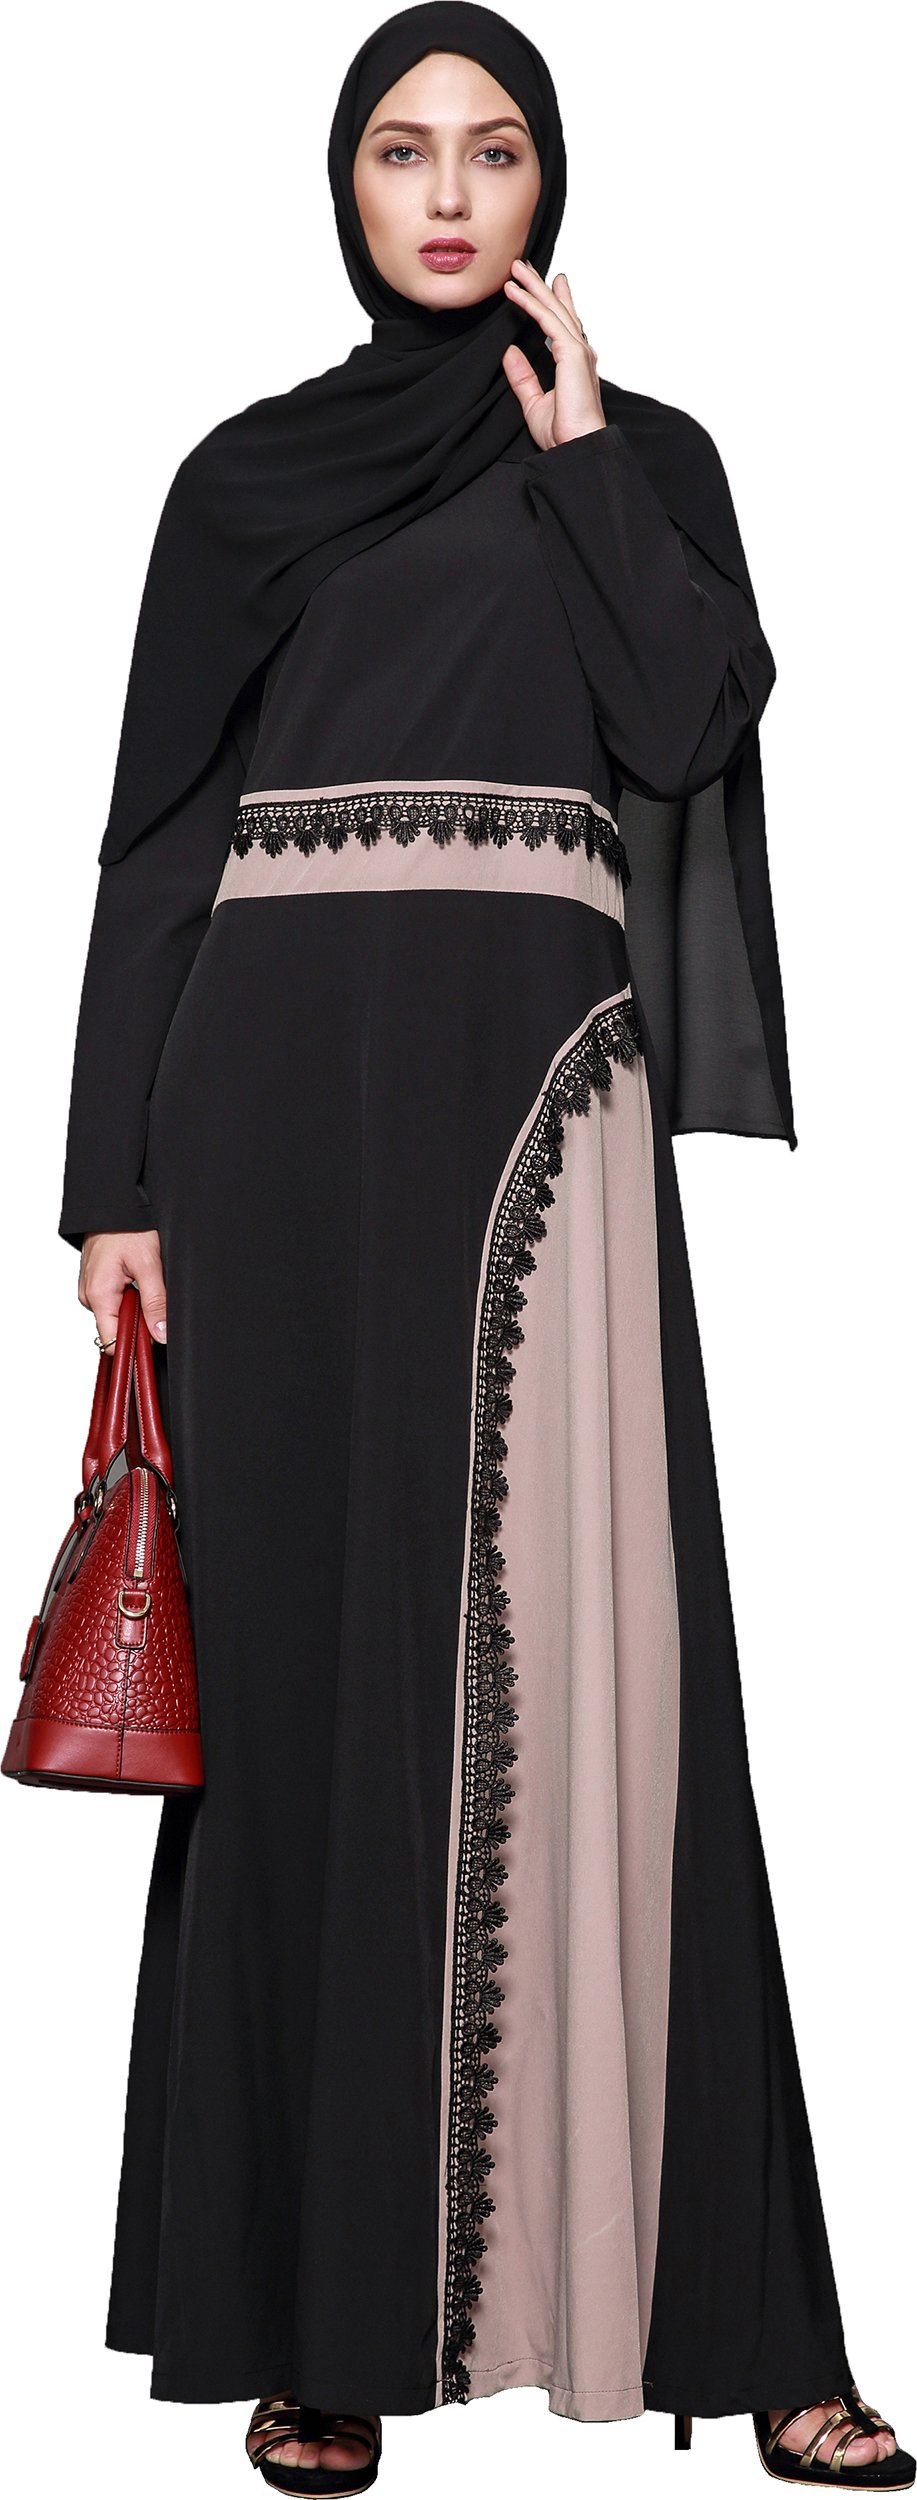 Ababalaya Women's Elegant Modest Muslim Full Length O-Neck Color Block Runway Abaya S-4XL,Black,Tag Size L = US Size 10-12